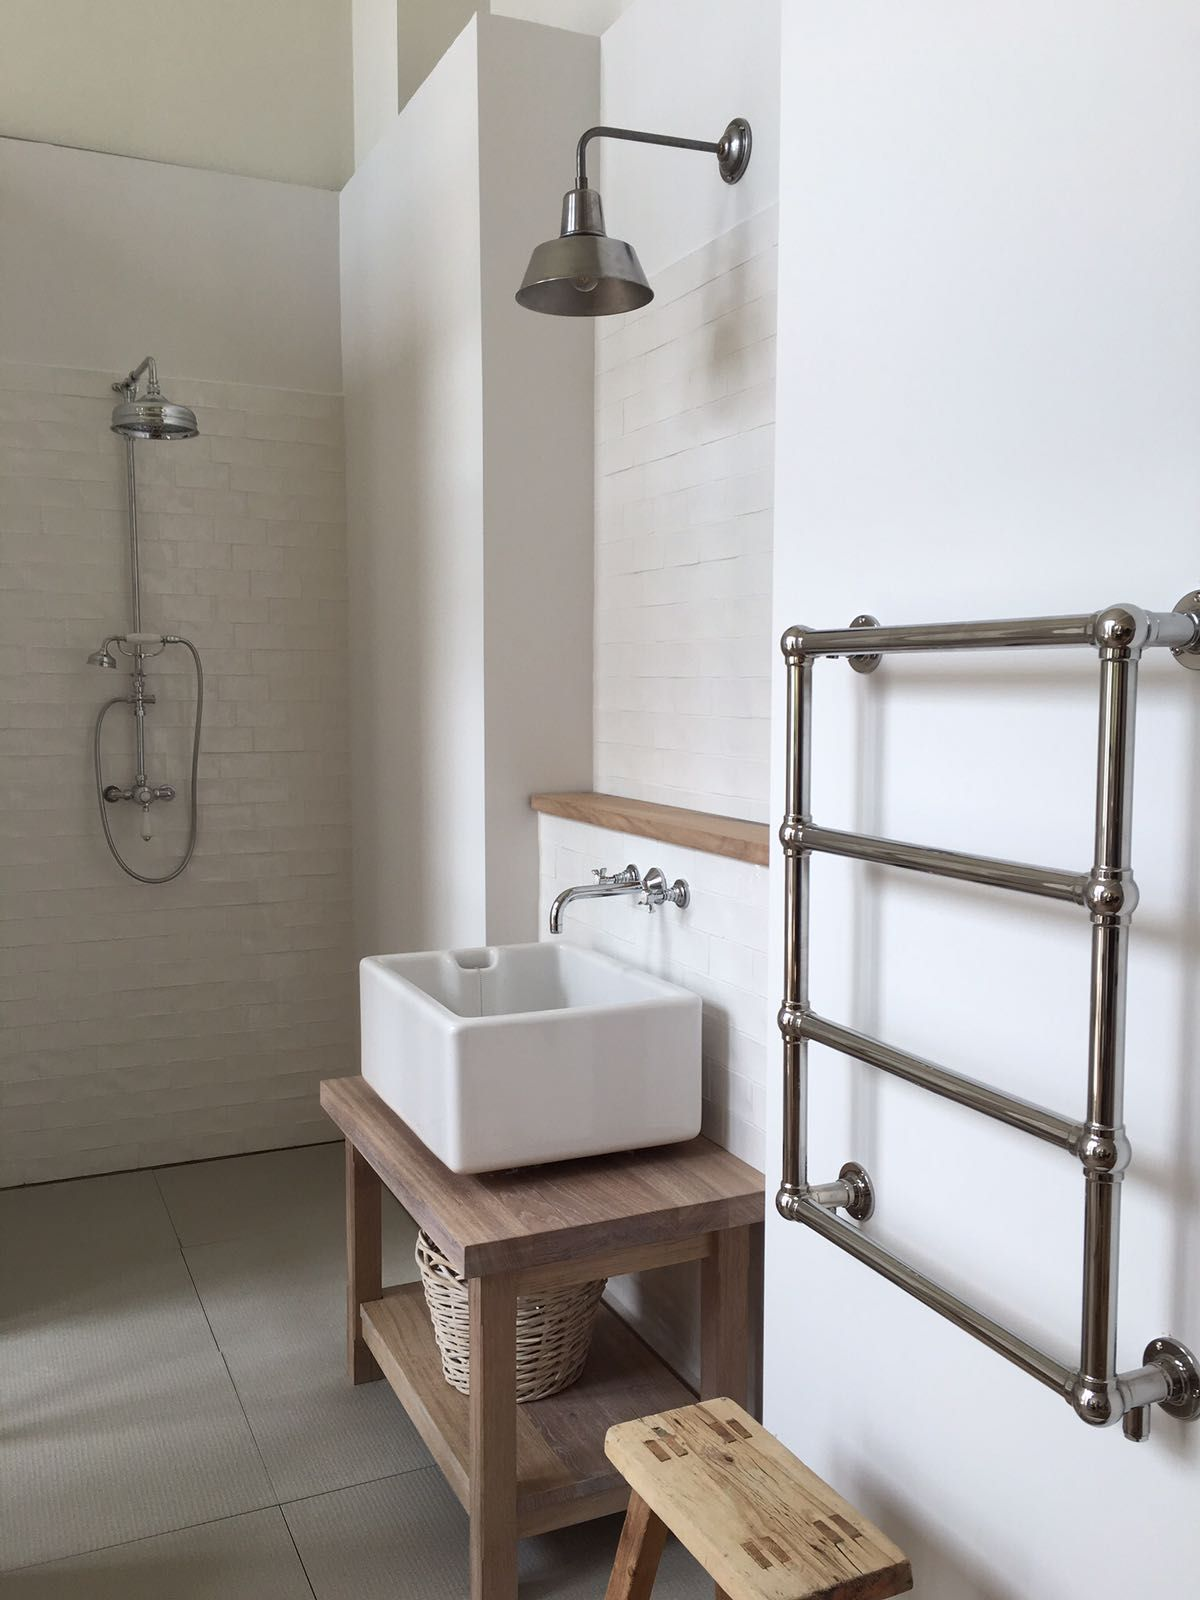 tap - taps - old school - bathroom ideas - bath tap - taps - retro ...